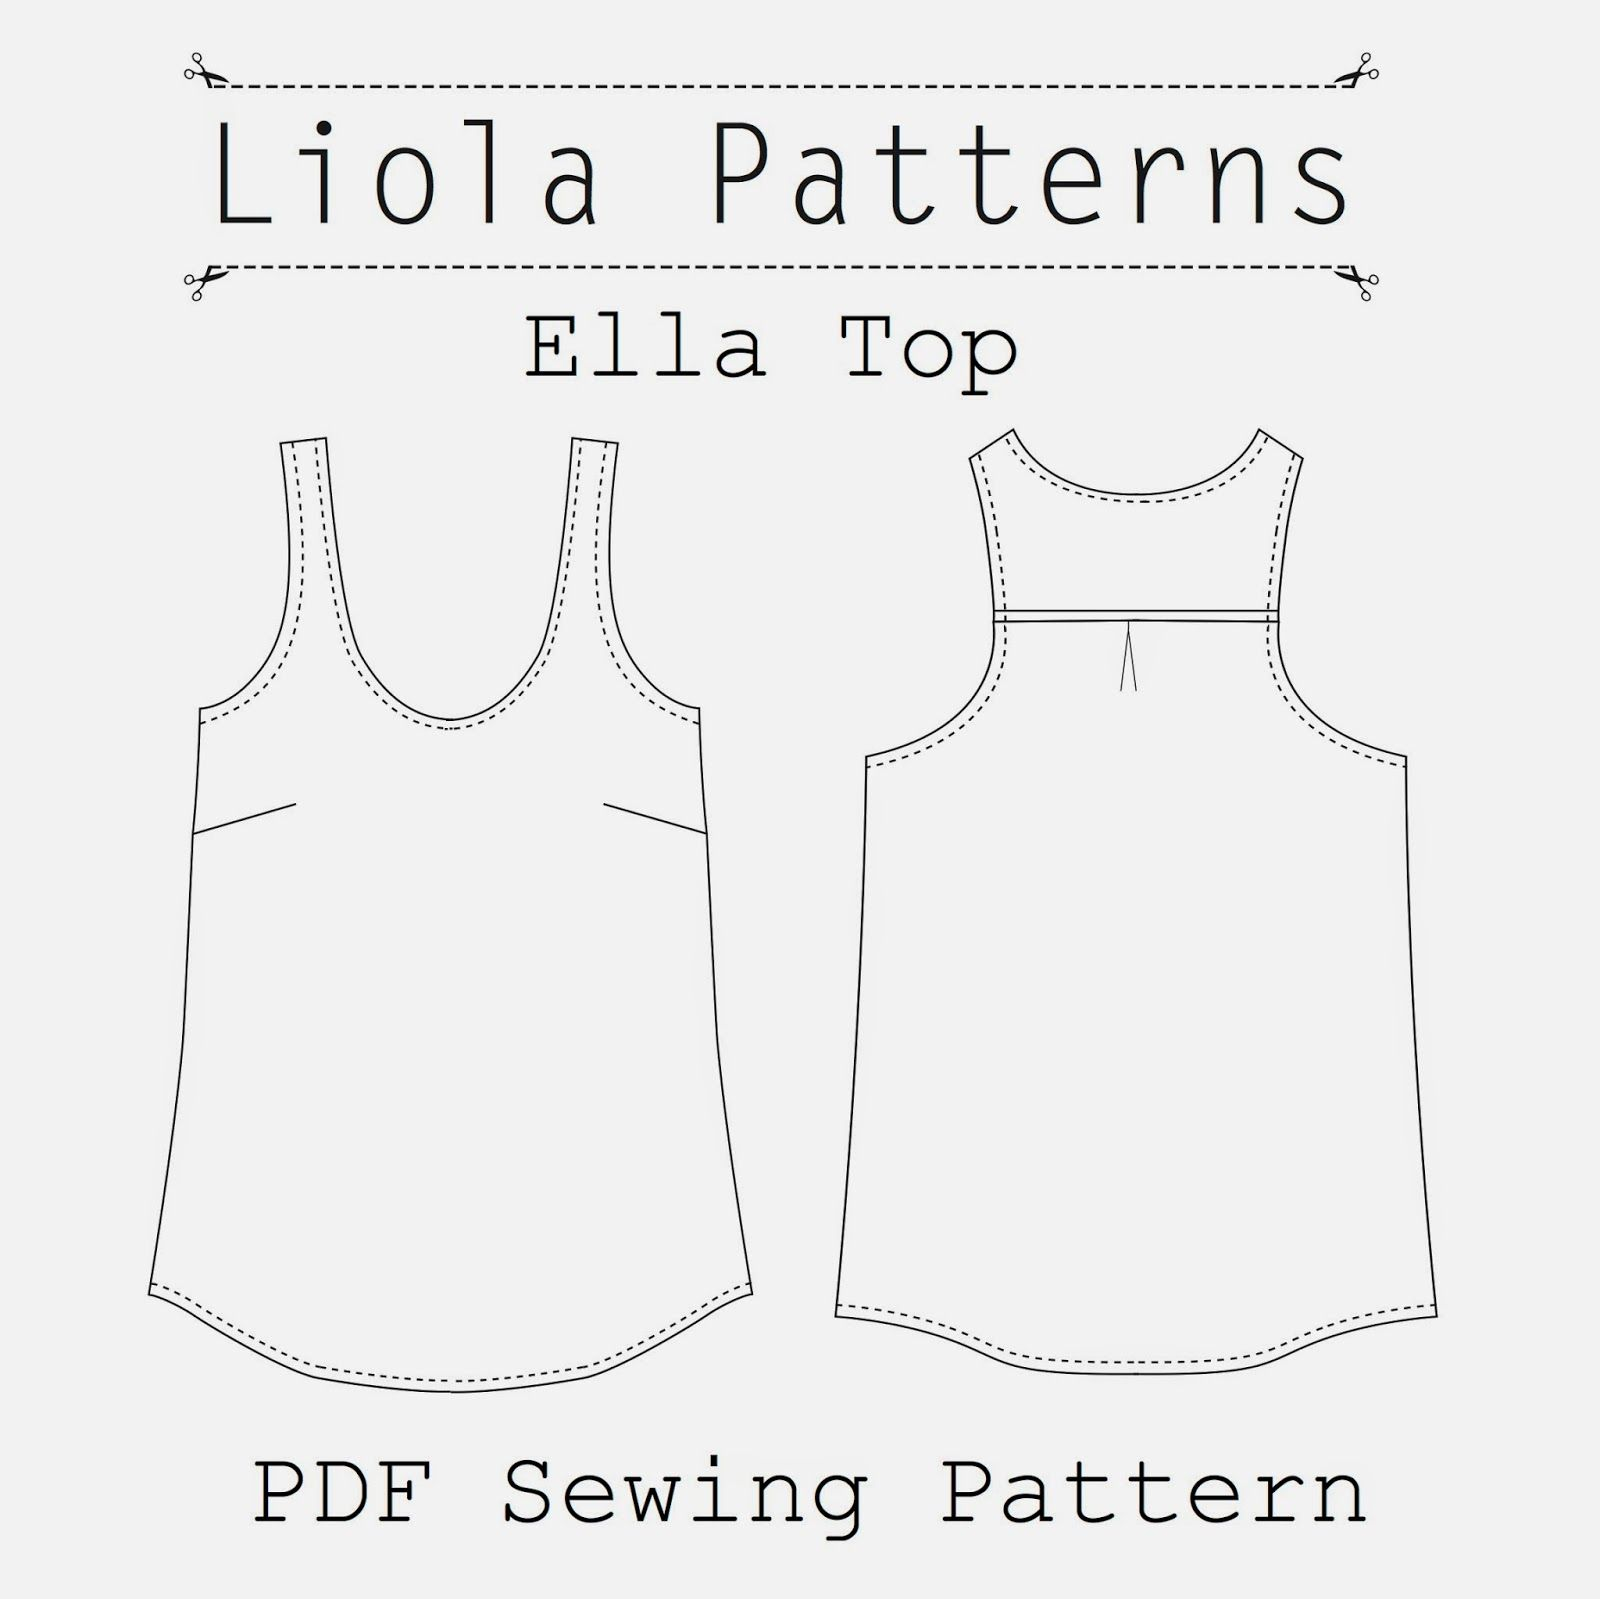 Liola Designs: Ella Top PDF Sewing Pattern | Sewing ambitions ...